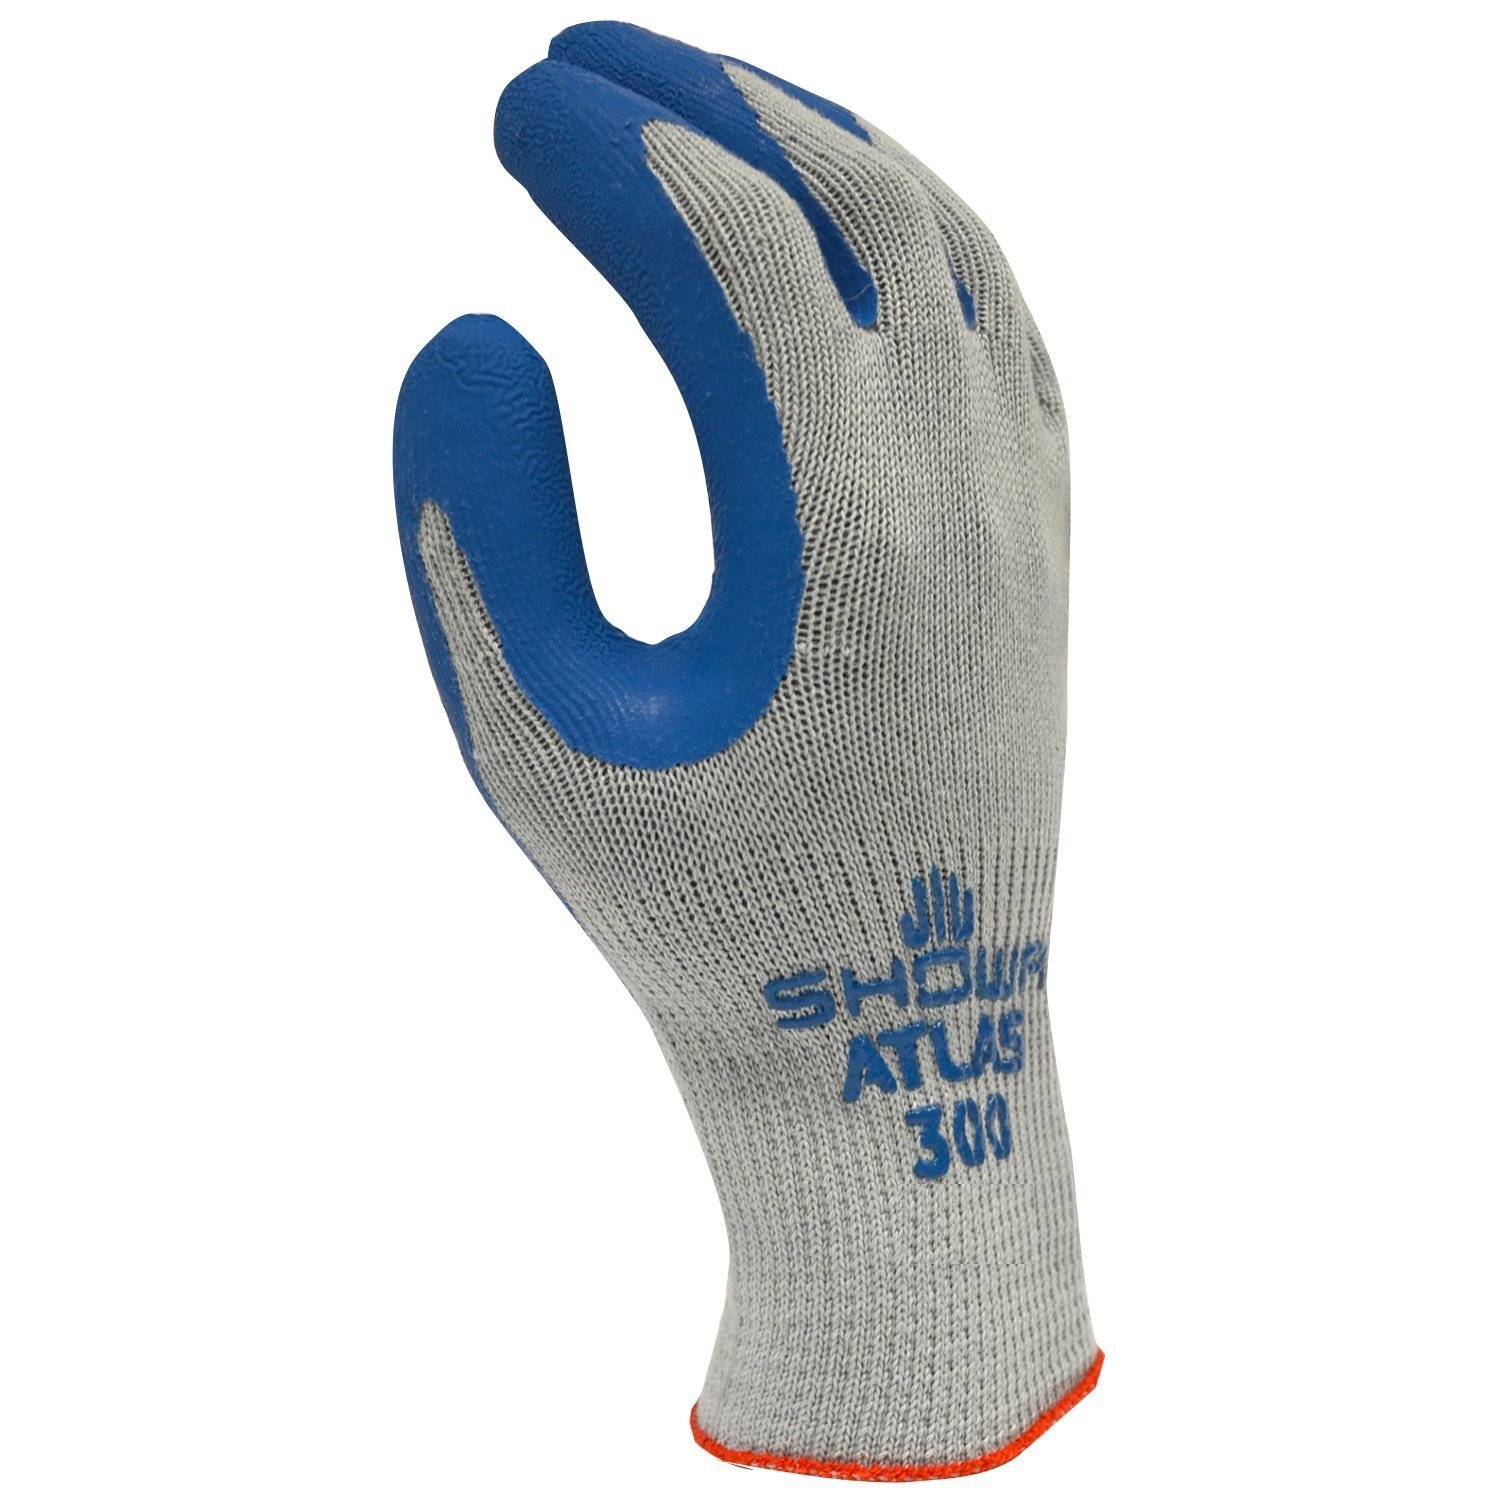 SHOWA 300L-09 Atlas Fit 300 Rubber-Coated Gloves, Large, Gray/Blue (12 Pair) by SHOWA